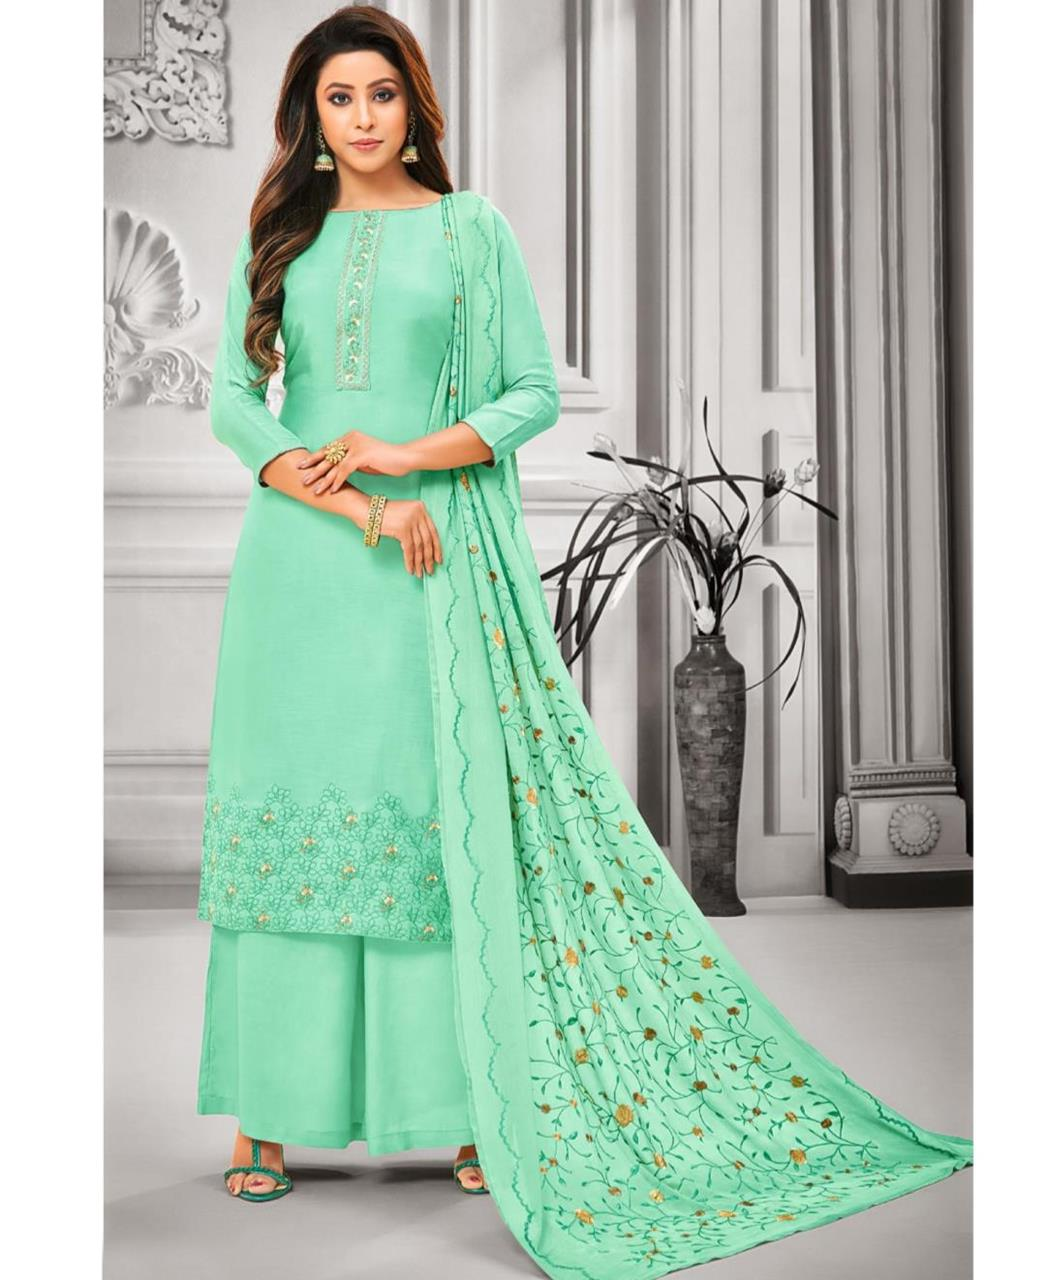 Embroidered Satin SEAGREEN Palazzo Suit Salwar